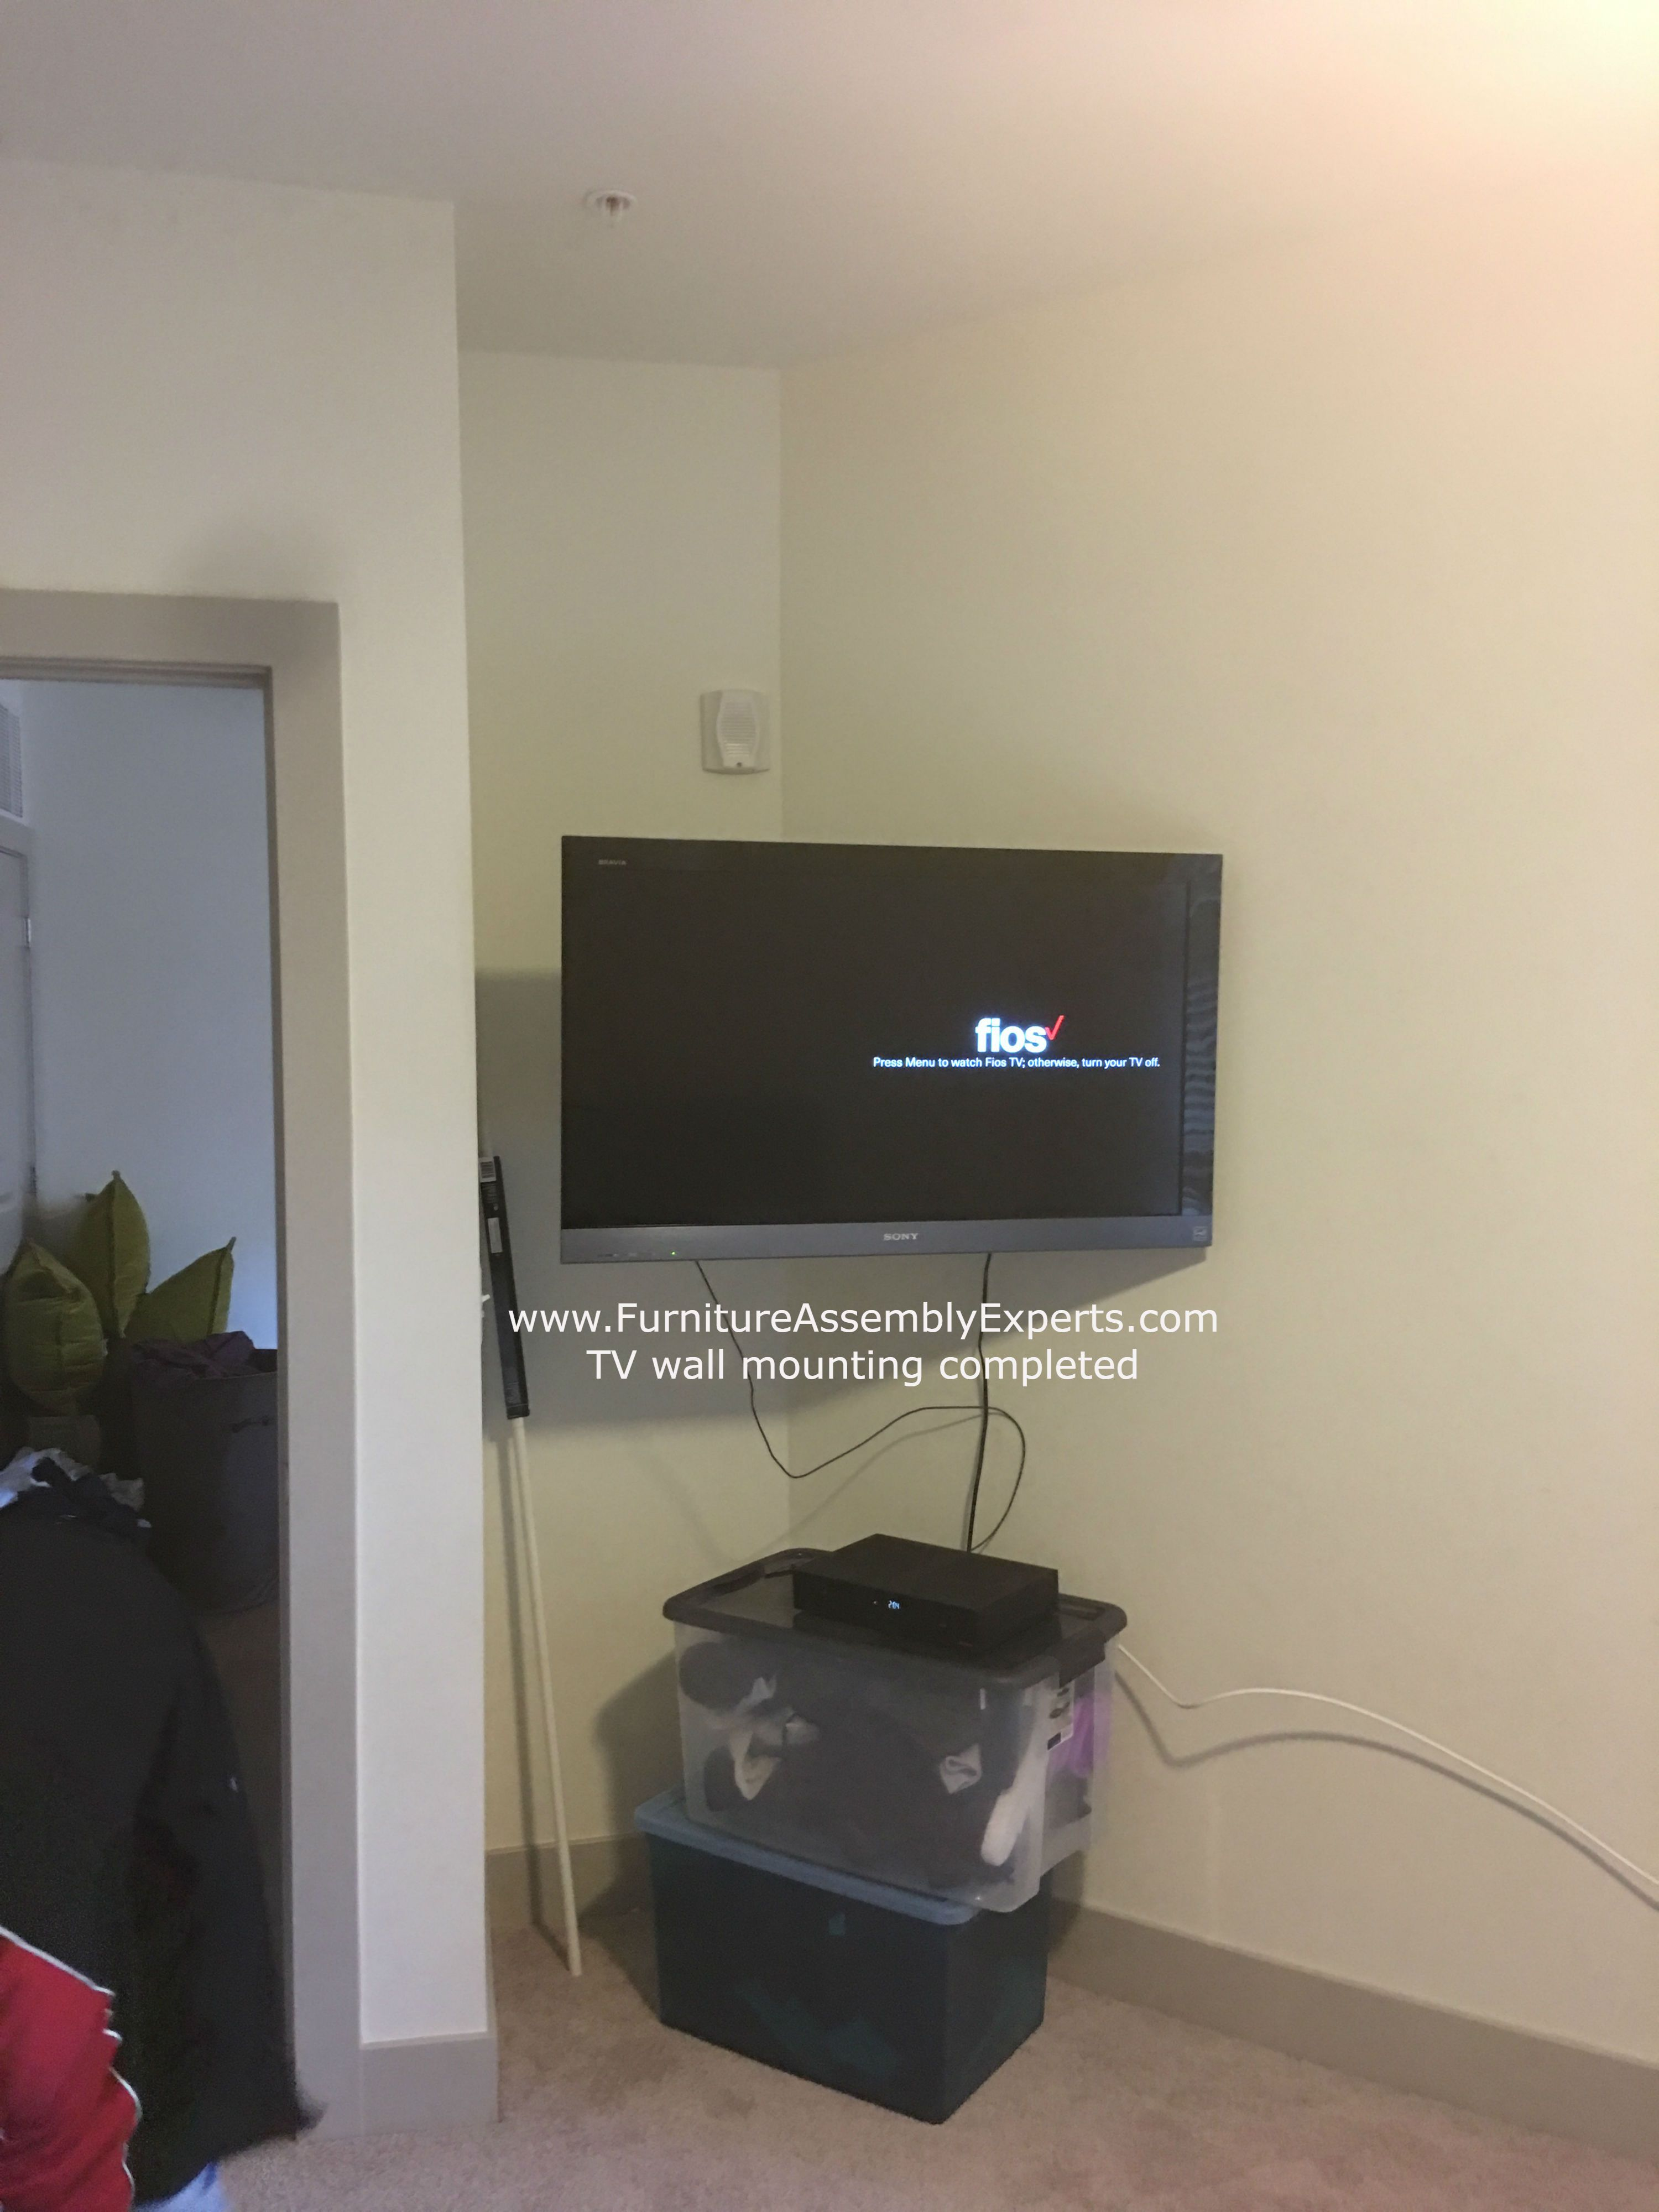 Tv Wall Installation Service Completed In Delaware By Furniture Assembly Experts Company We Service Washington Dc Tv Wall Tv Wall Installation Wall Mounted Tv